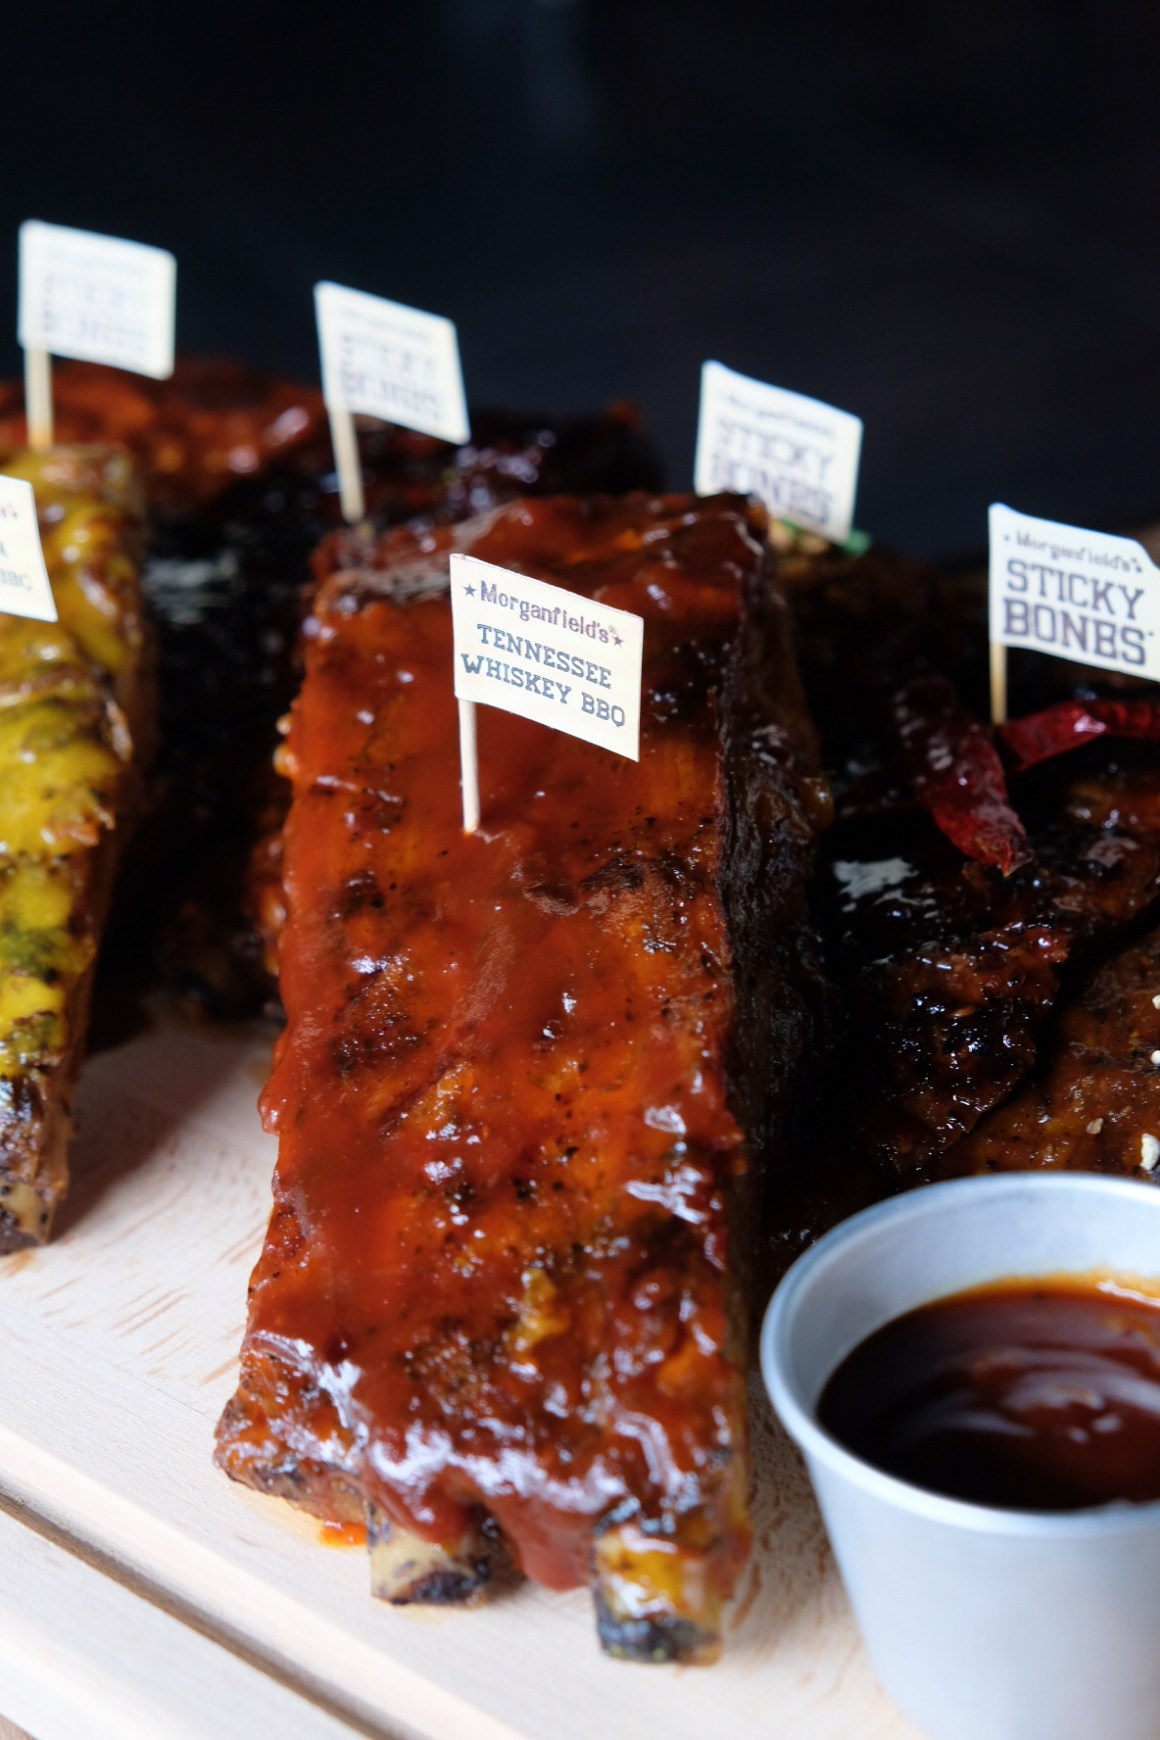 Morganfield's Two New Barbecue Rib Sauces - Tennessee Whiskey BBQ